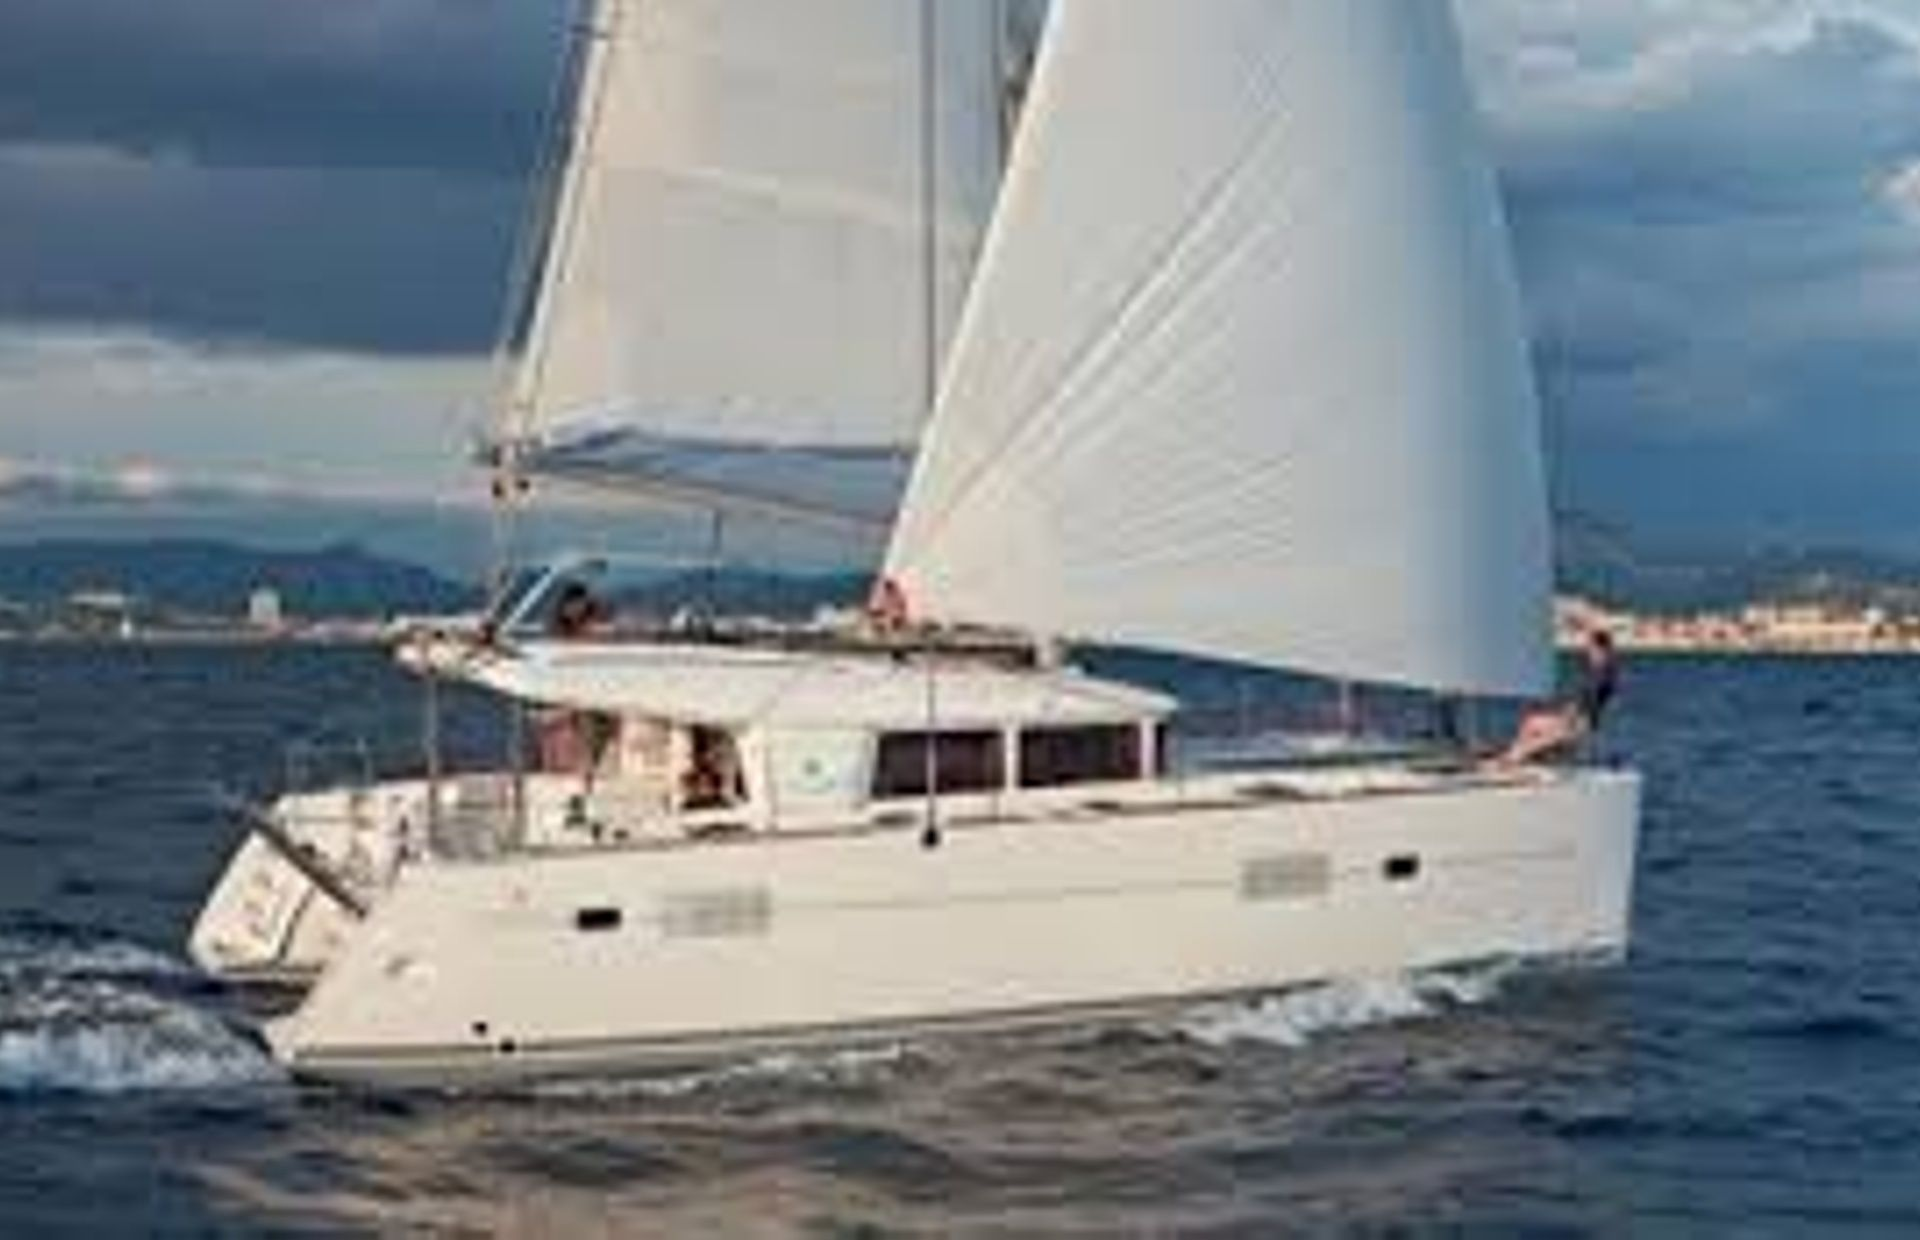 https://media.insailing.com/boat/no-name/image_1570017280660.jpg